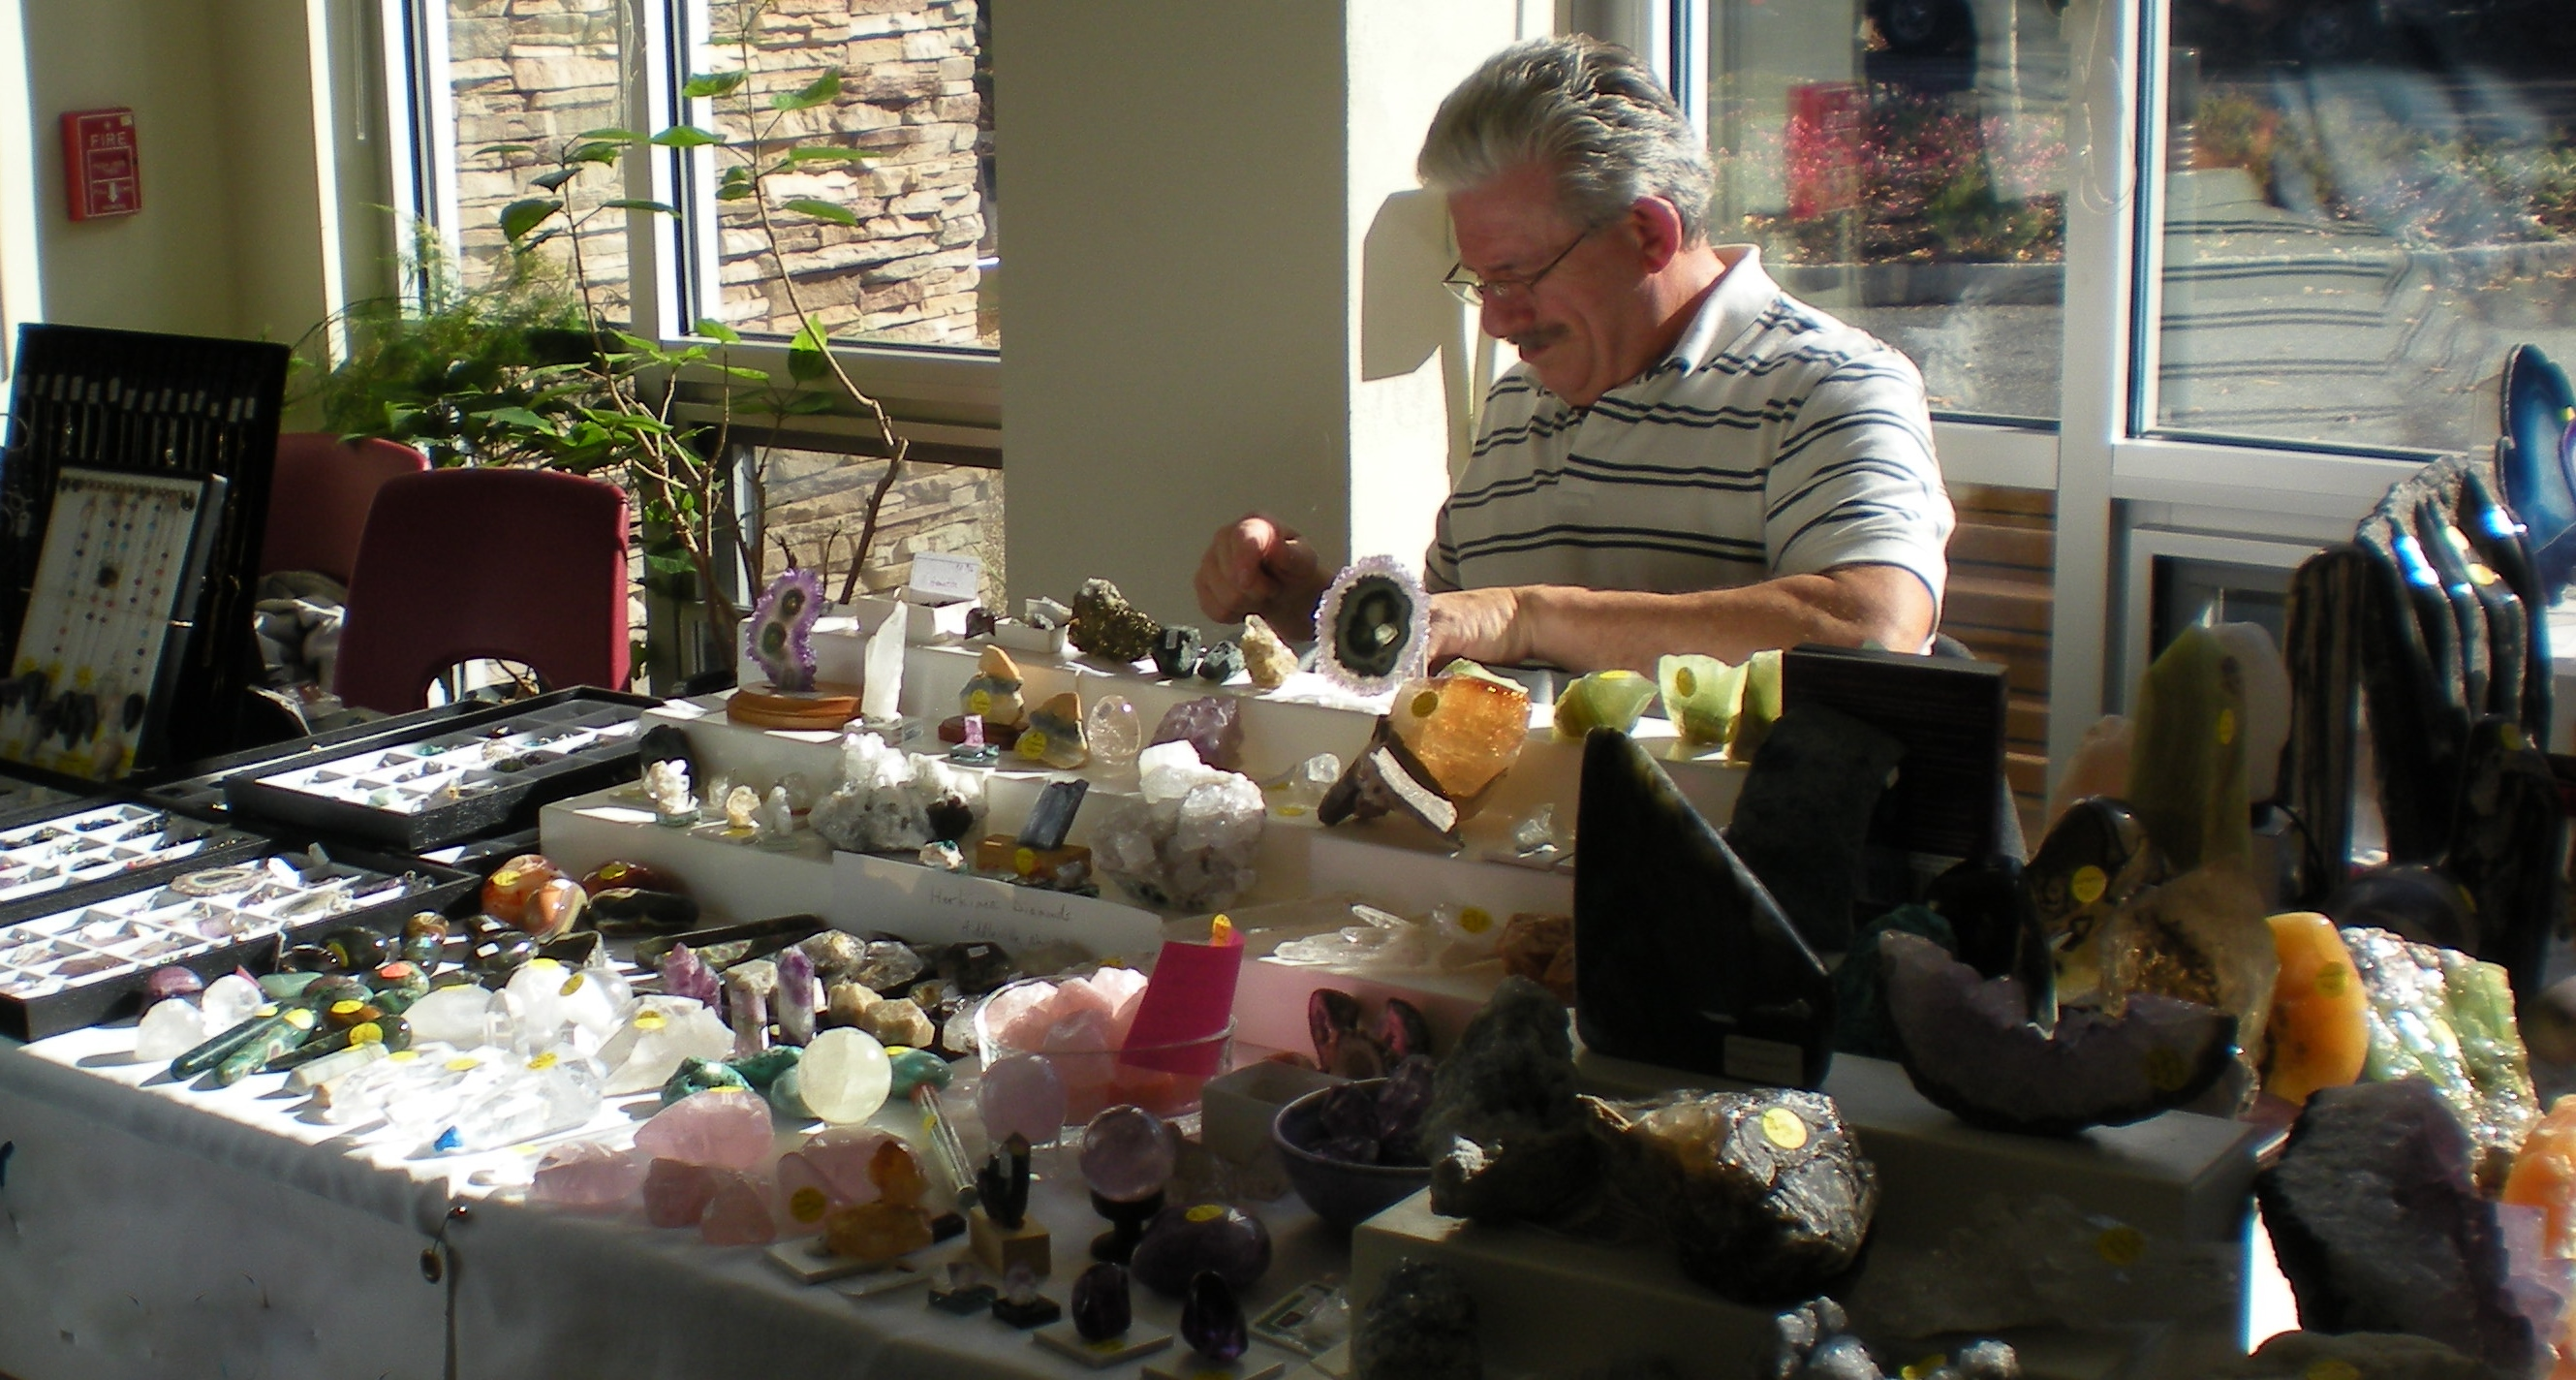 Calling all geologists, young and old! The Union County Board of Chosen Freeholders and the Department of Parks and Recreation invite you visit Trailside Nature and Science Center on Saturday, November 7 and Sunday, November 8 from noon to 5 p.m. for the Rock, Gem and Jewelry Show.  More than 20 vendors will be on hand displaying and selling their specimens of rocks, gems, fossils, minerals, sea shells and jewelry from around the world.  Admission to this event is free. Trailside is located at 452 New Providence Road in Mountainside and is a service of the Union County Board of Chosen Freeholders. For additional information call 908-789-3670.  Visit us at www.ucnj.org/trailside for information on fall programs and special events for families and adults.